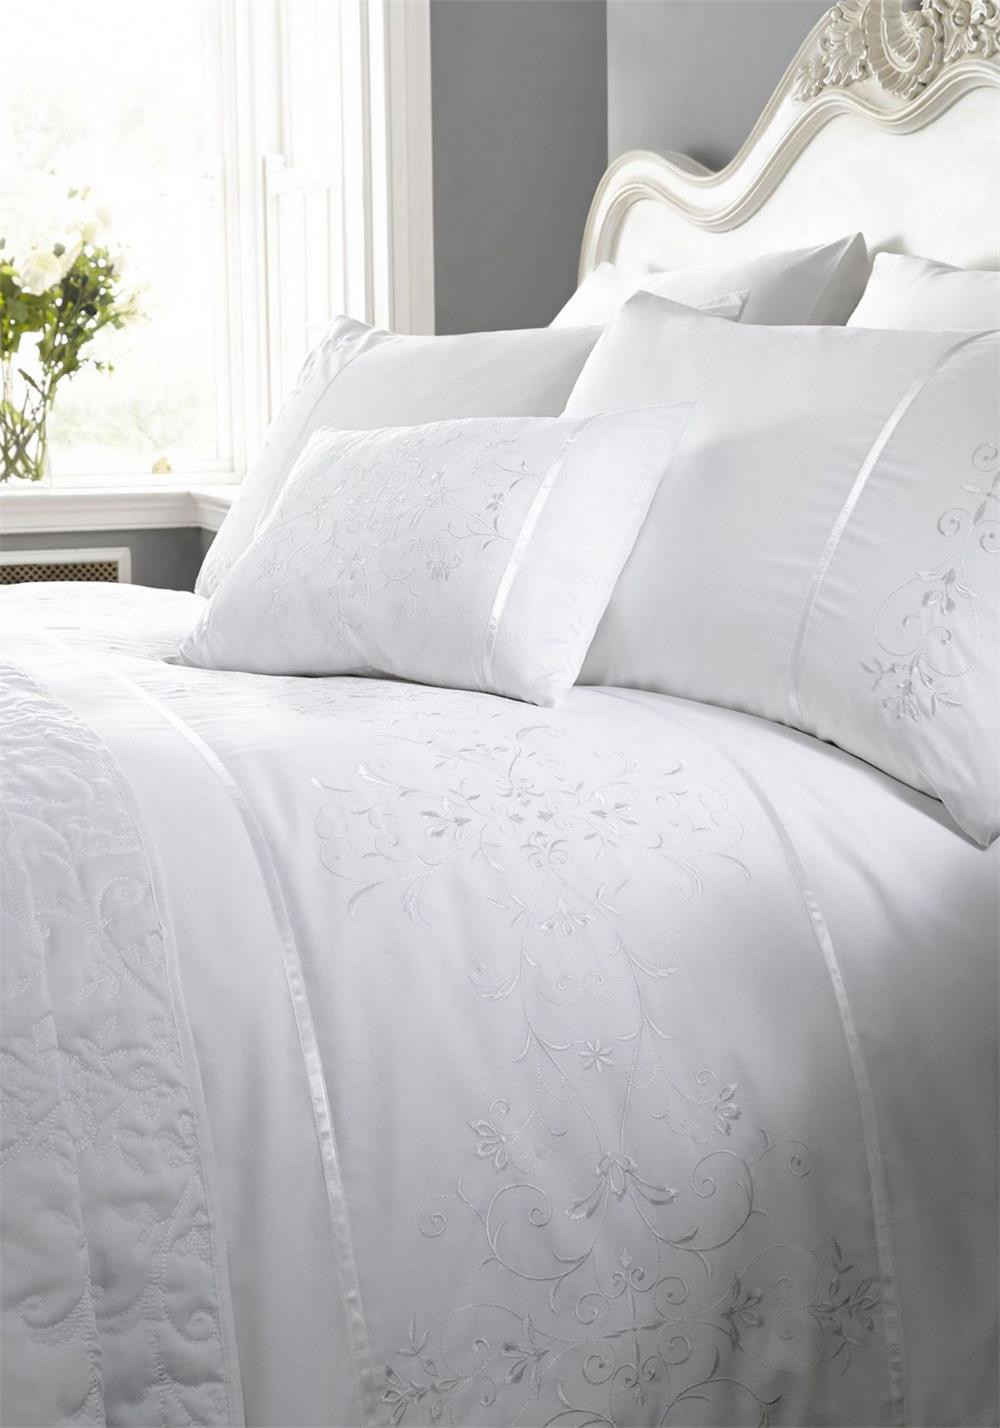 Eleanor James Sutton Duvet Set, White